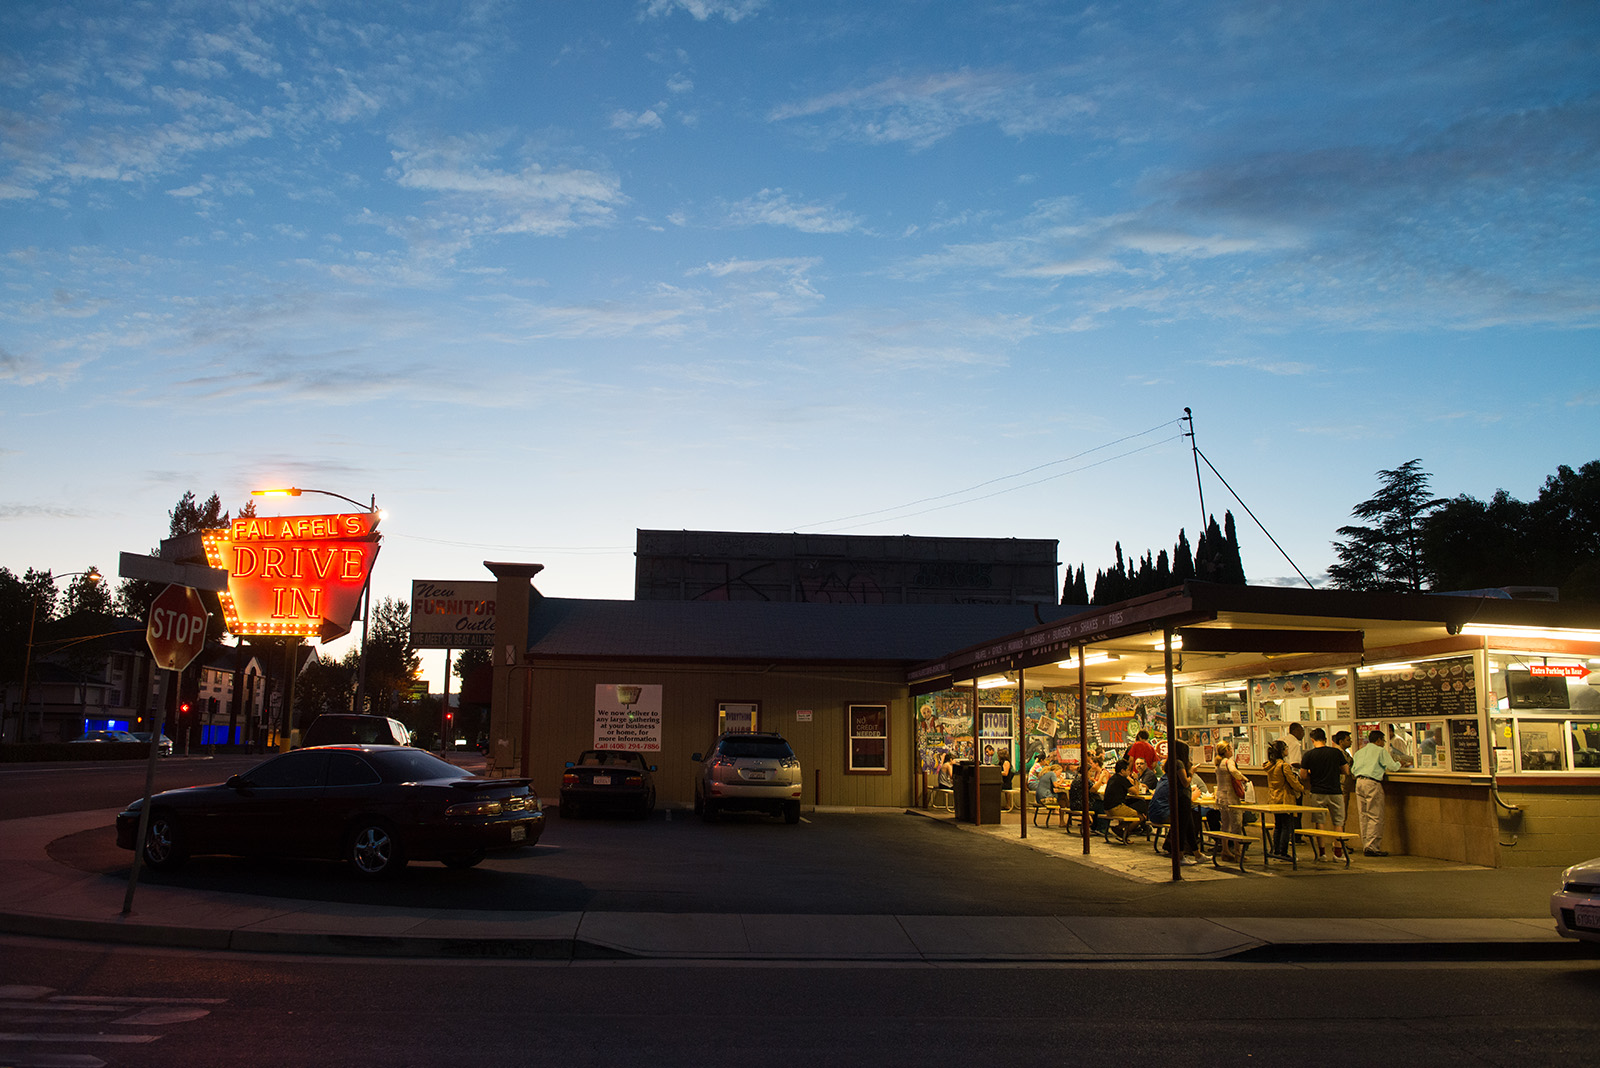 Falafel Drive-In neon sign lit up and people dining outside